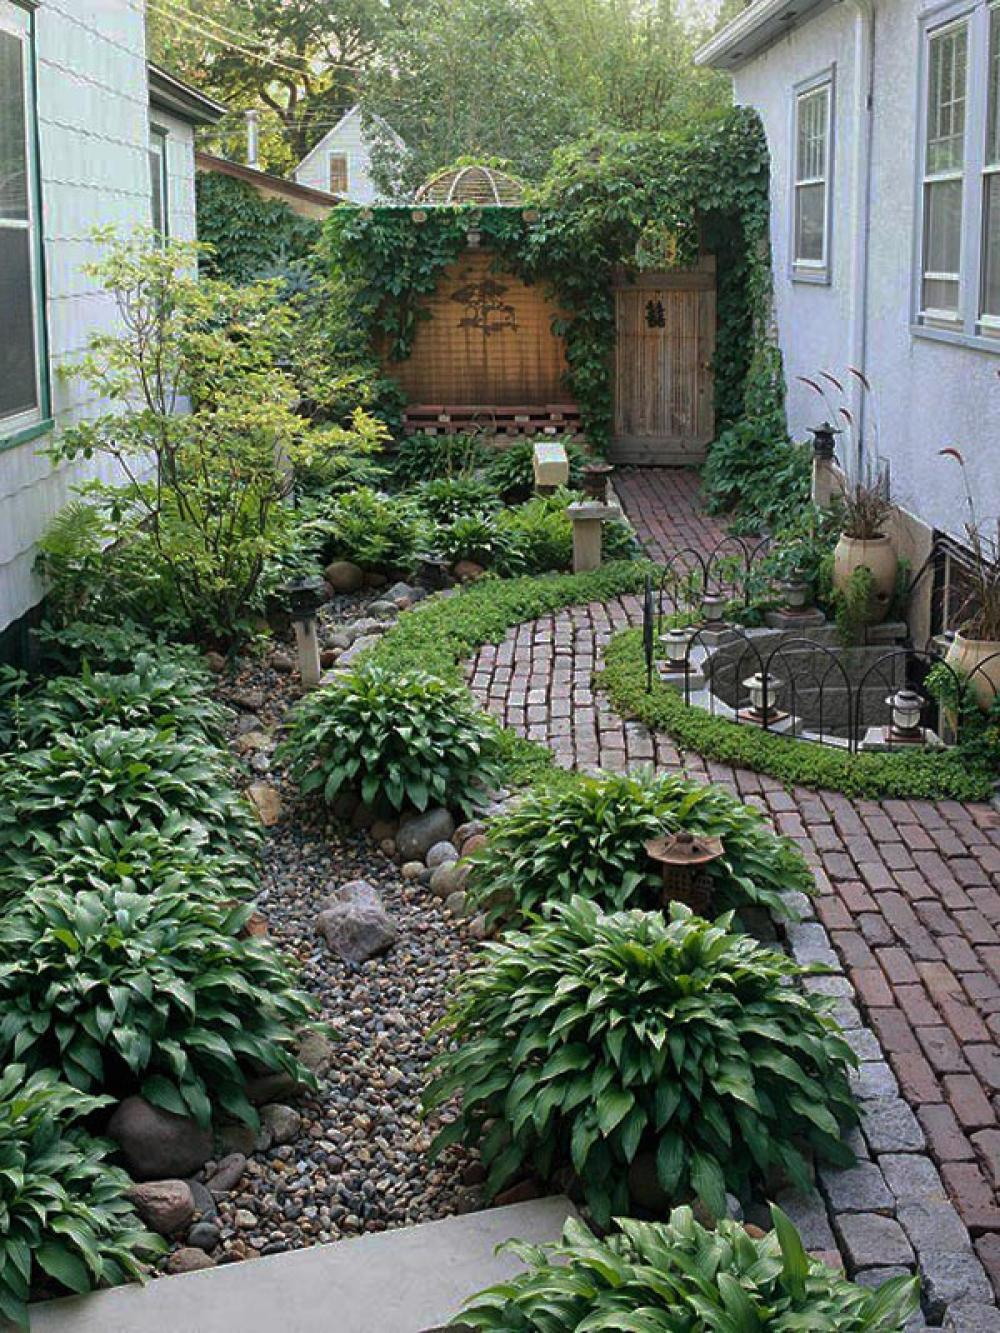 Small garden design in home home and design Small home garden design ideas